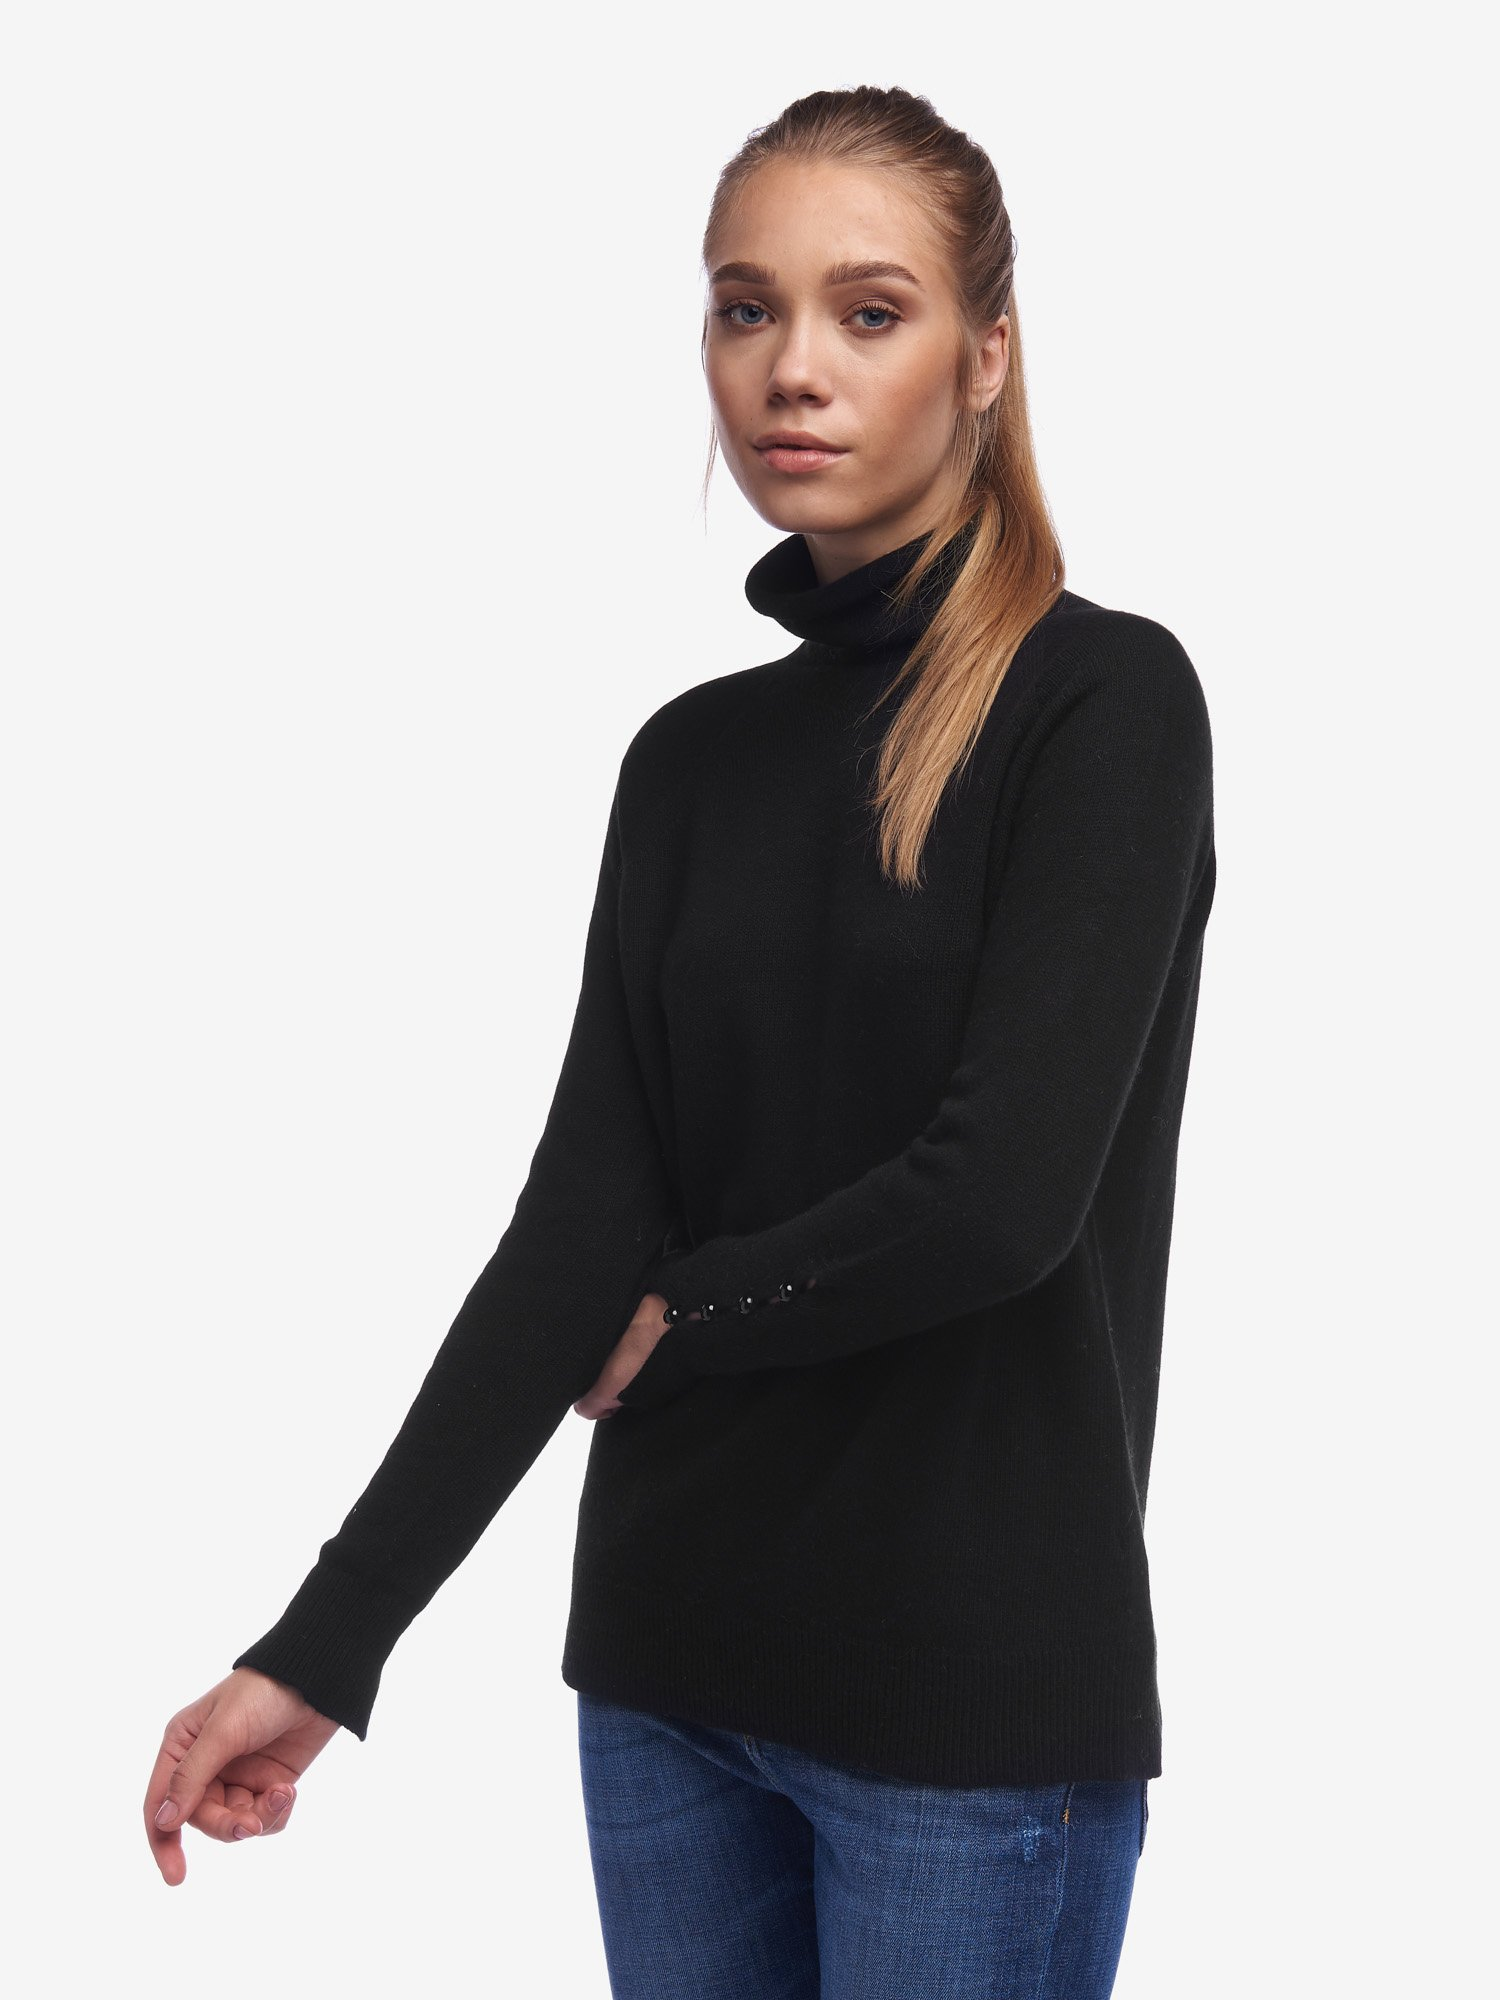 LONG TURTLENECK SWEATER - Blauer